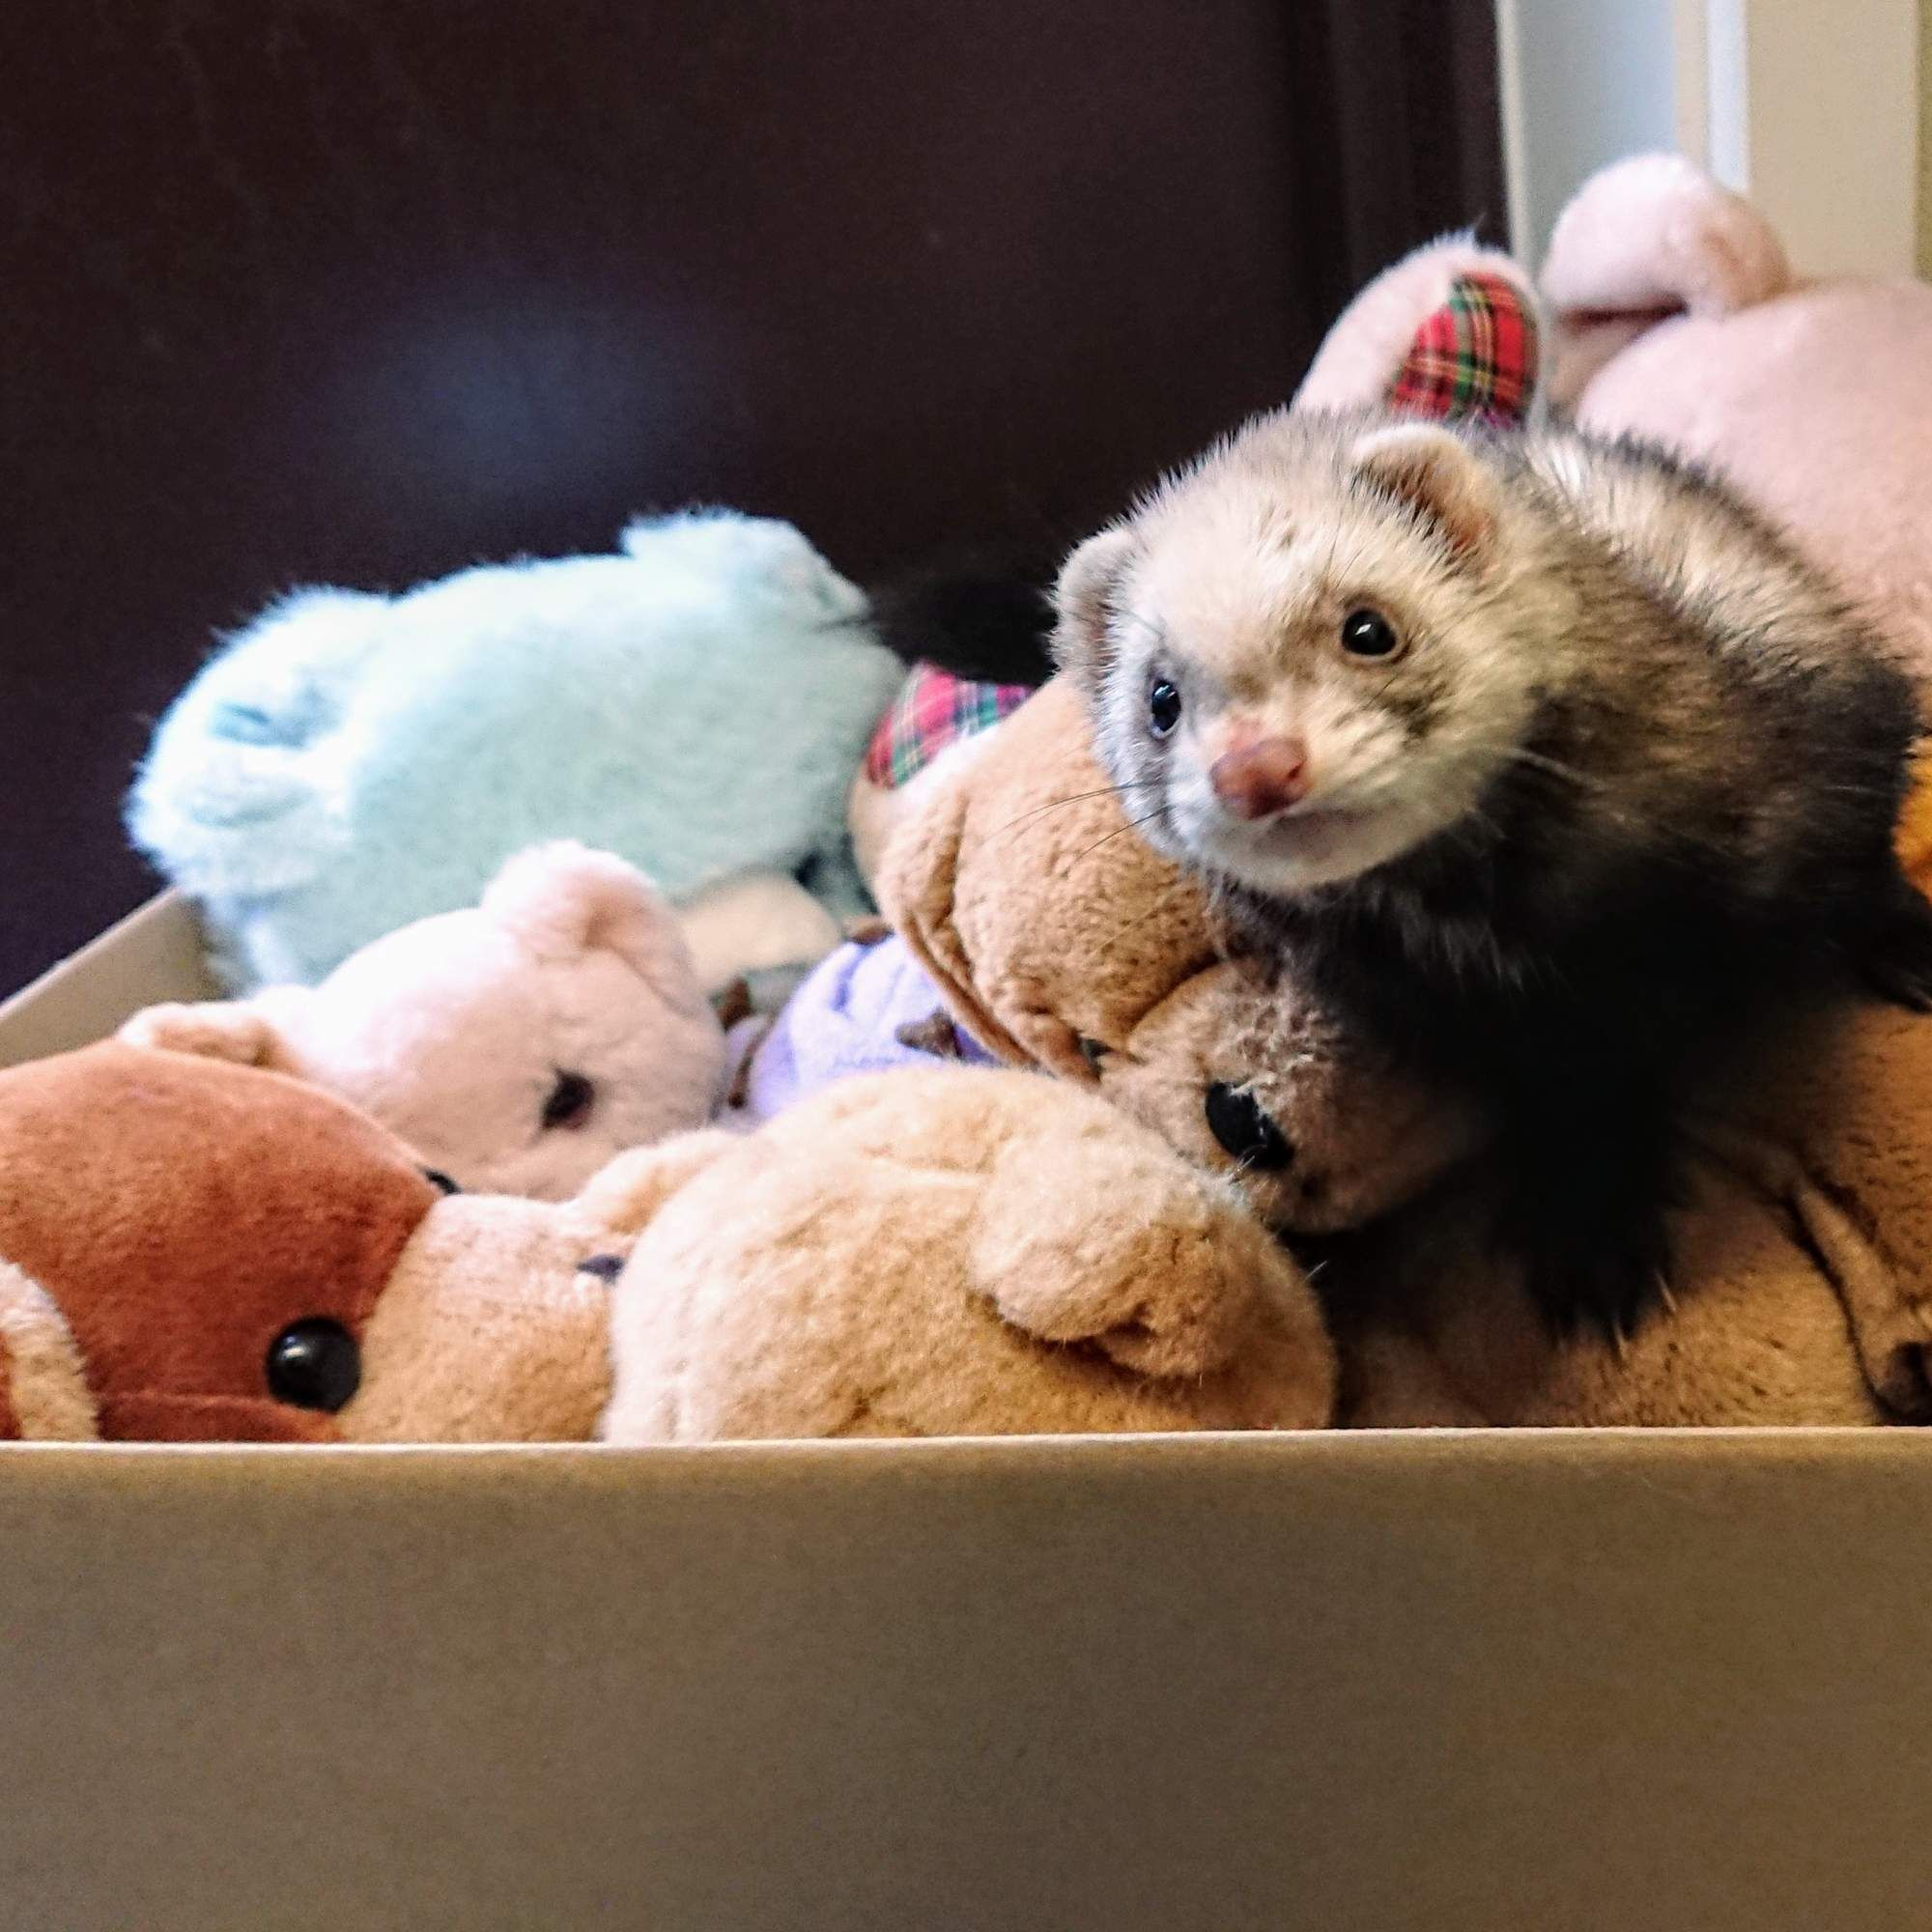 Woman Goes To Throw Away Bag Of Old Teddy Bears And Finds A Ferret Inside Old Teddy Bears Cute Ferrets Ferret